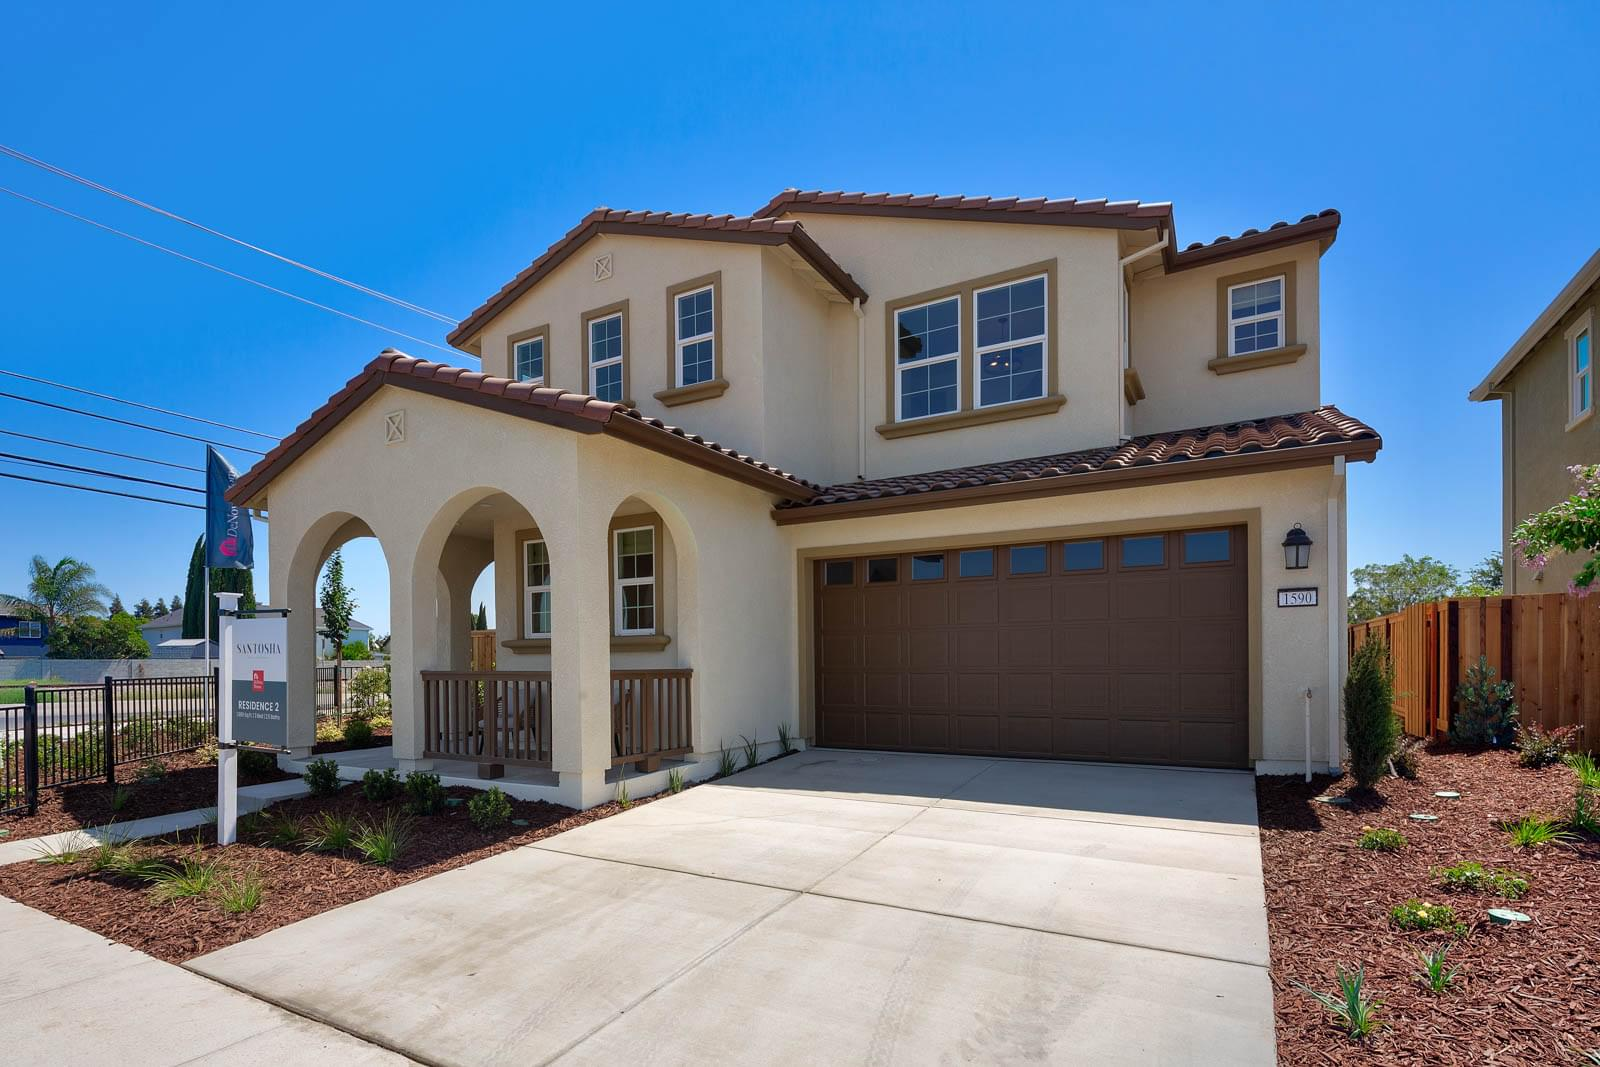 Santosha - A DeNova Homes Community in Tracy, CA